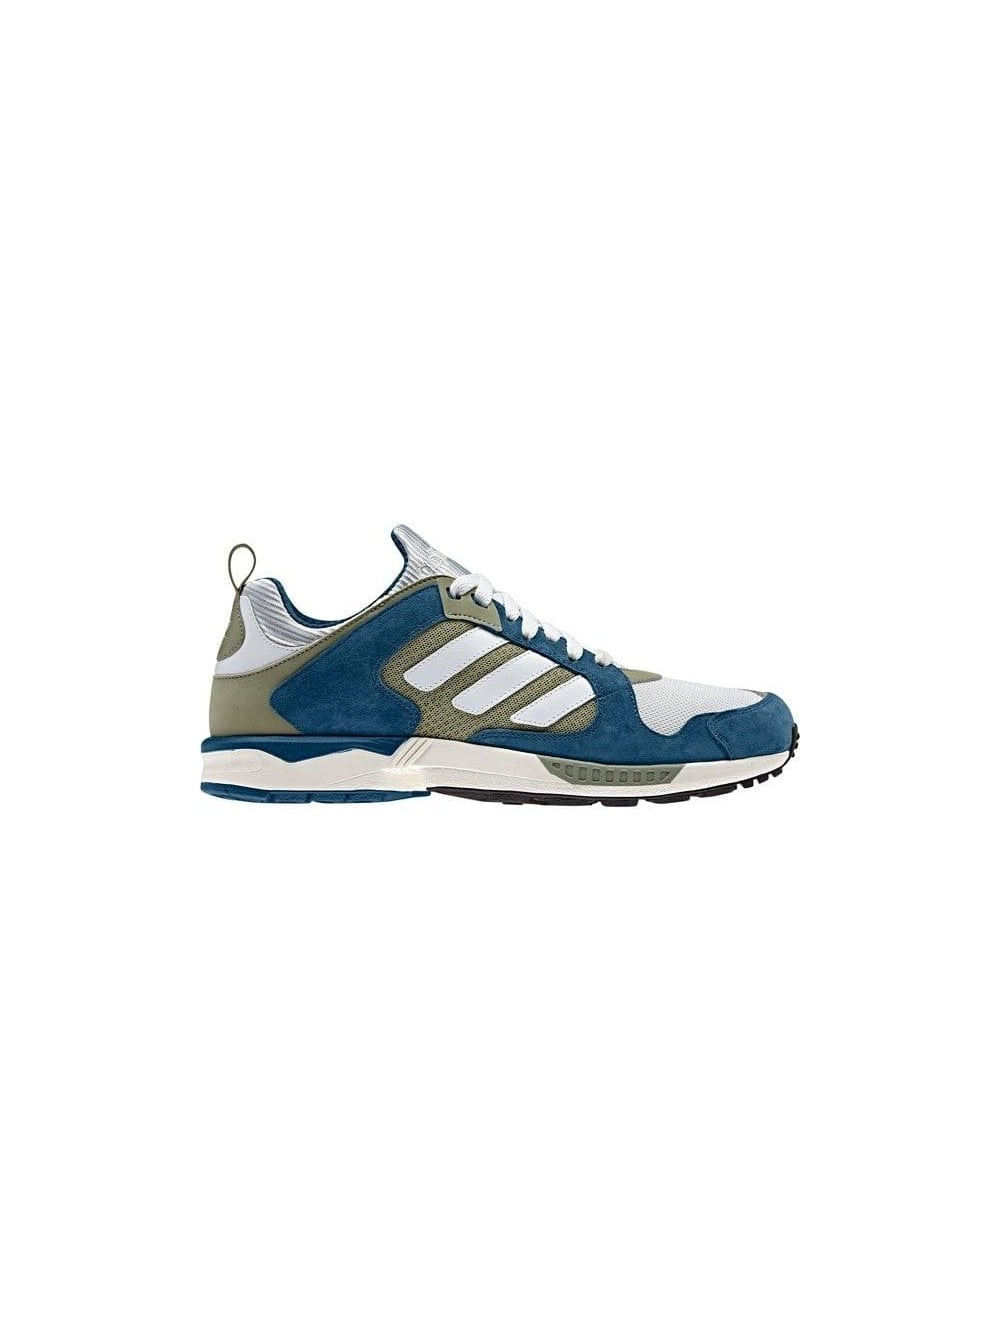 c73a83d23 Adidas Originals ZX 5000 RSPN in Tribe Blue - Northern Threads